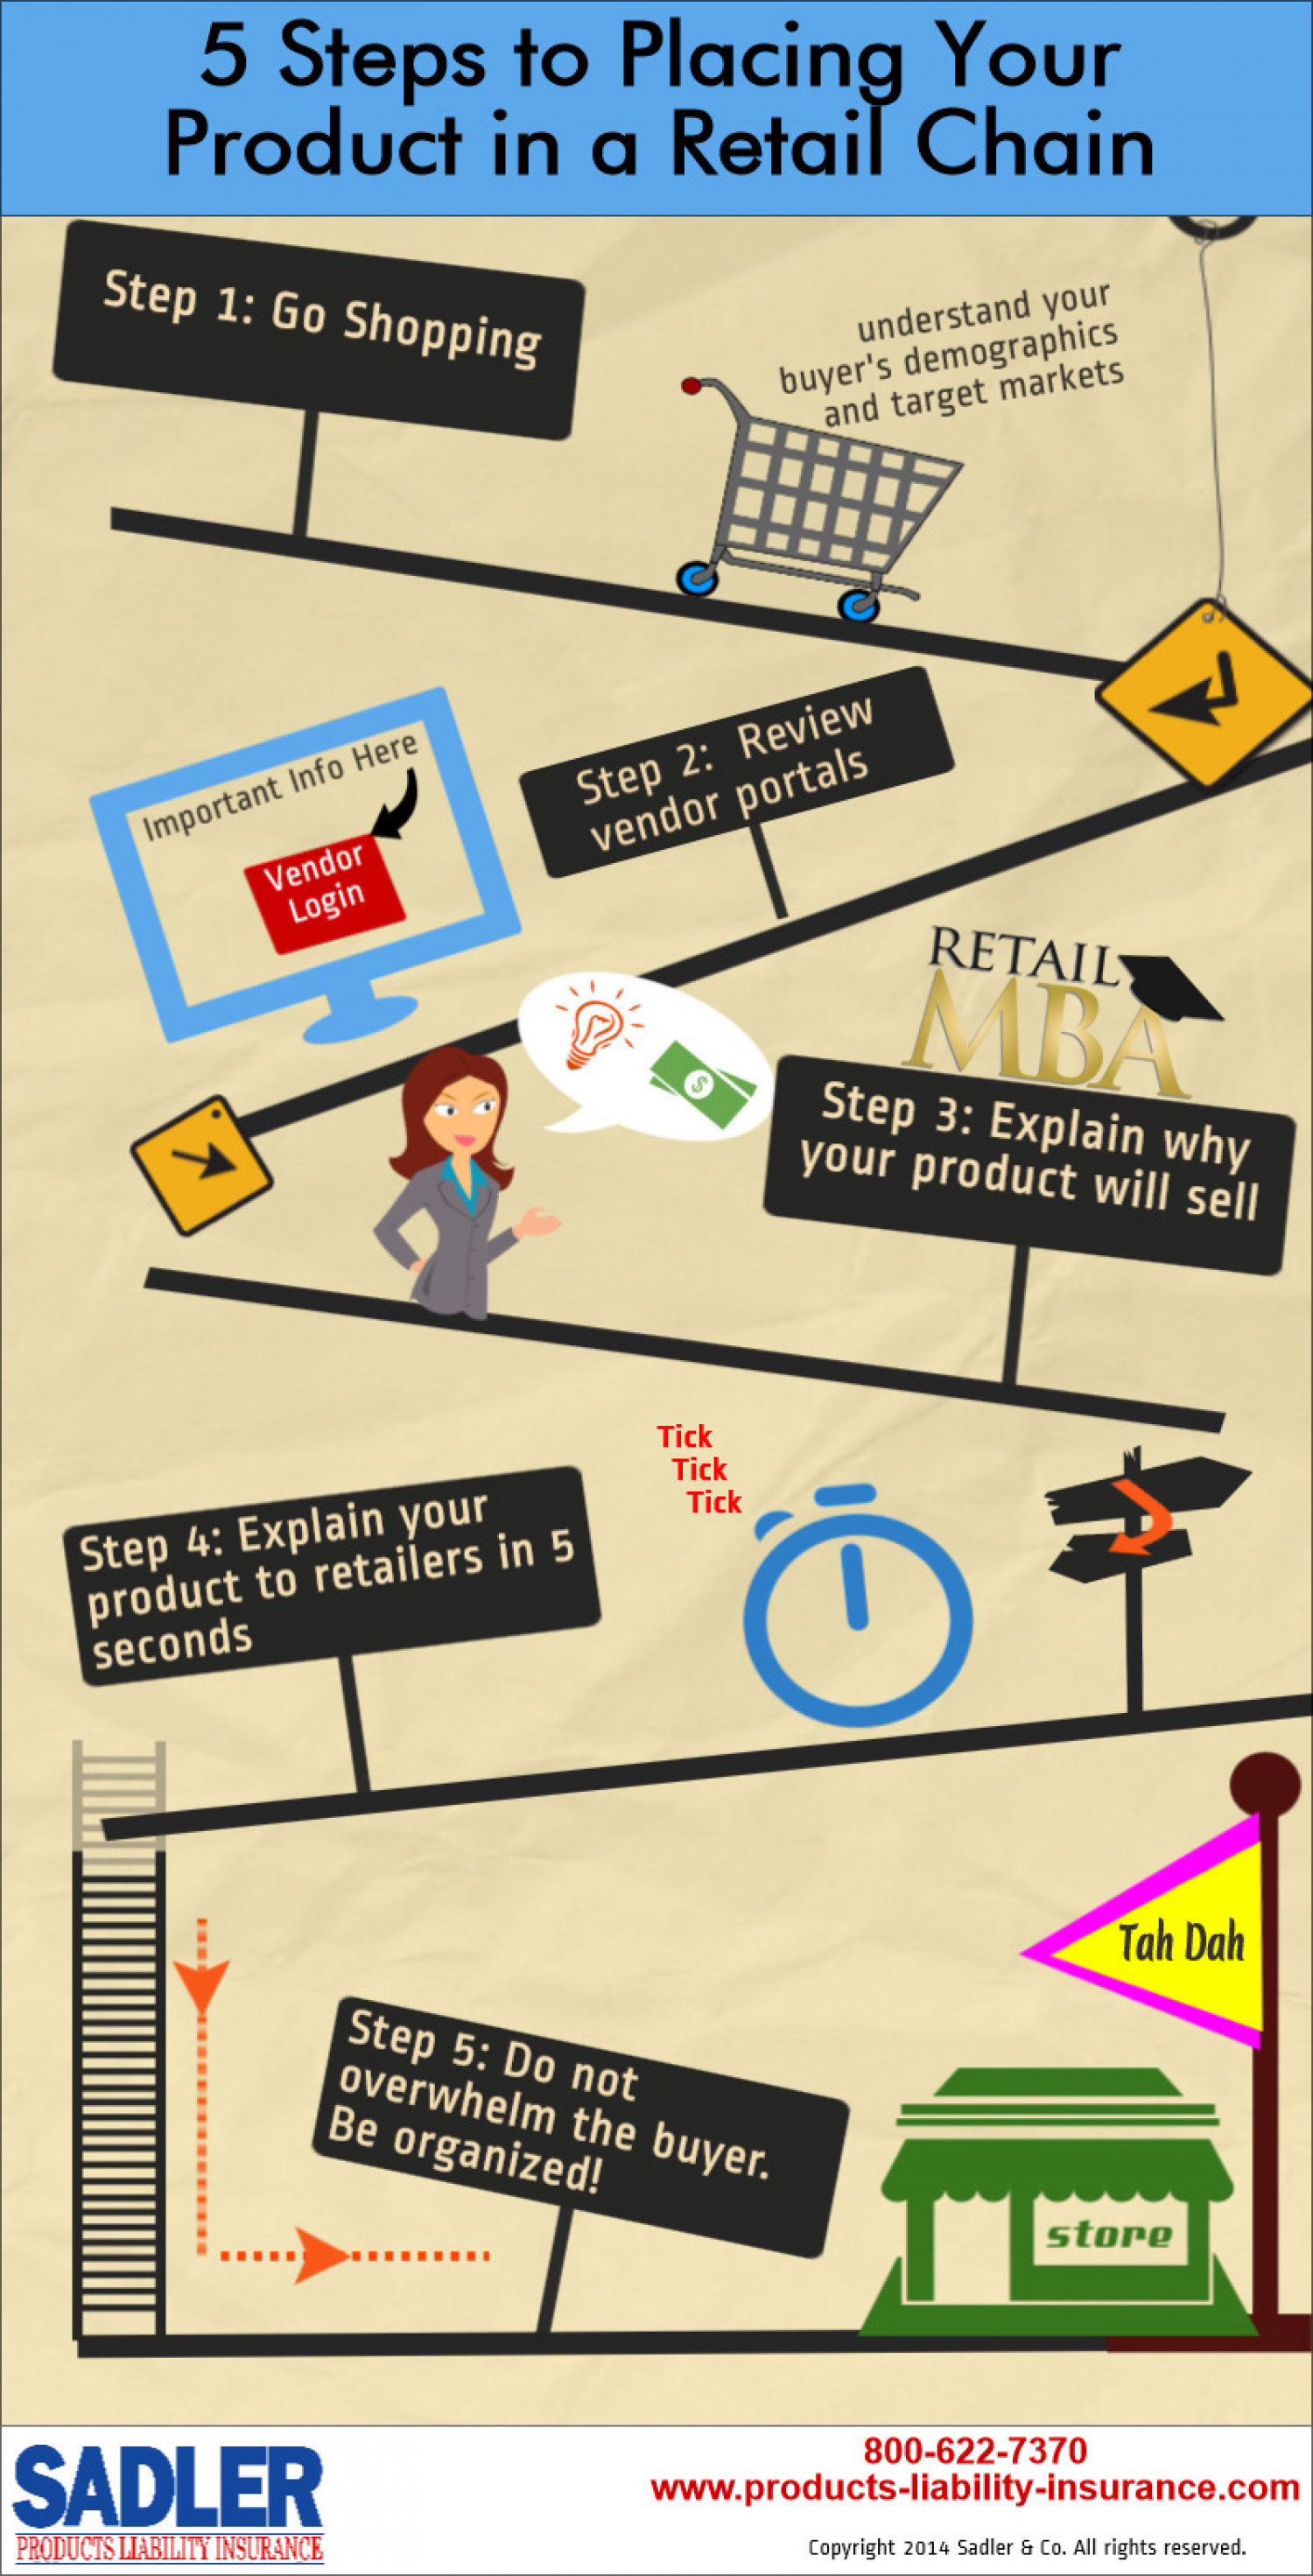 5 Steps to Placing Your Product in a Retail Chain Infographic